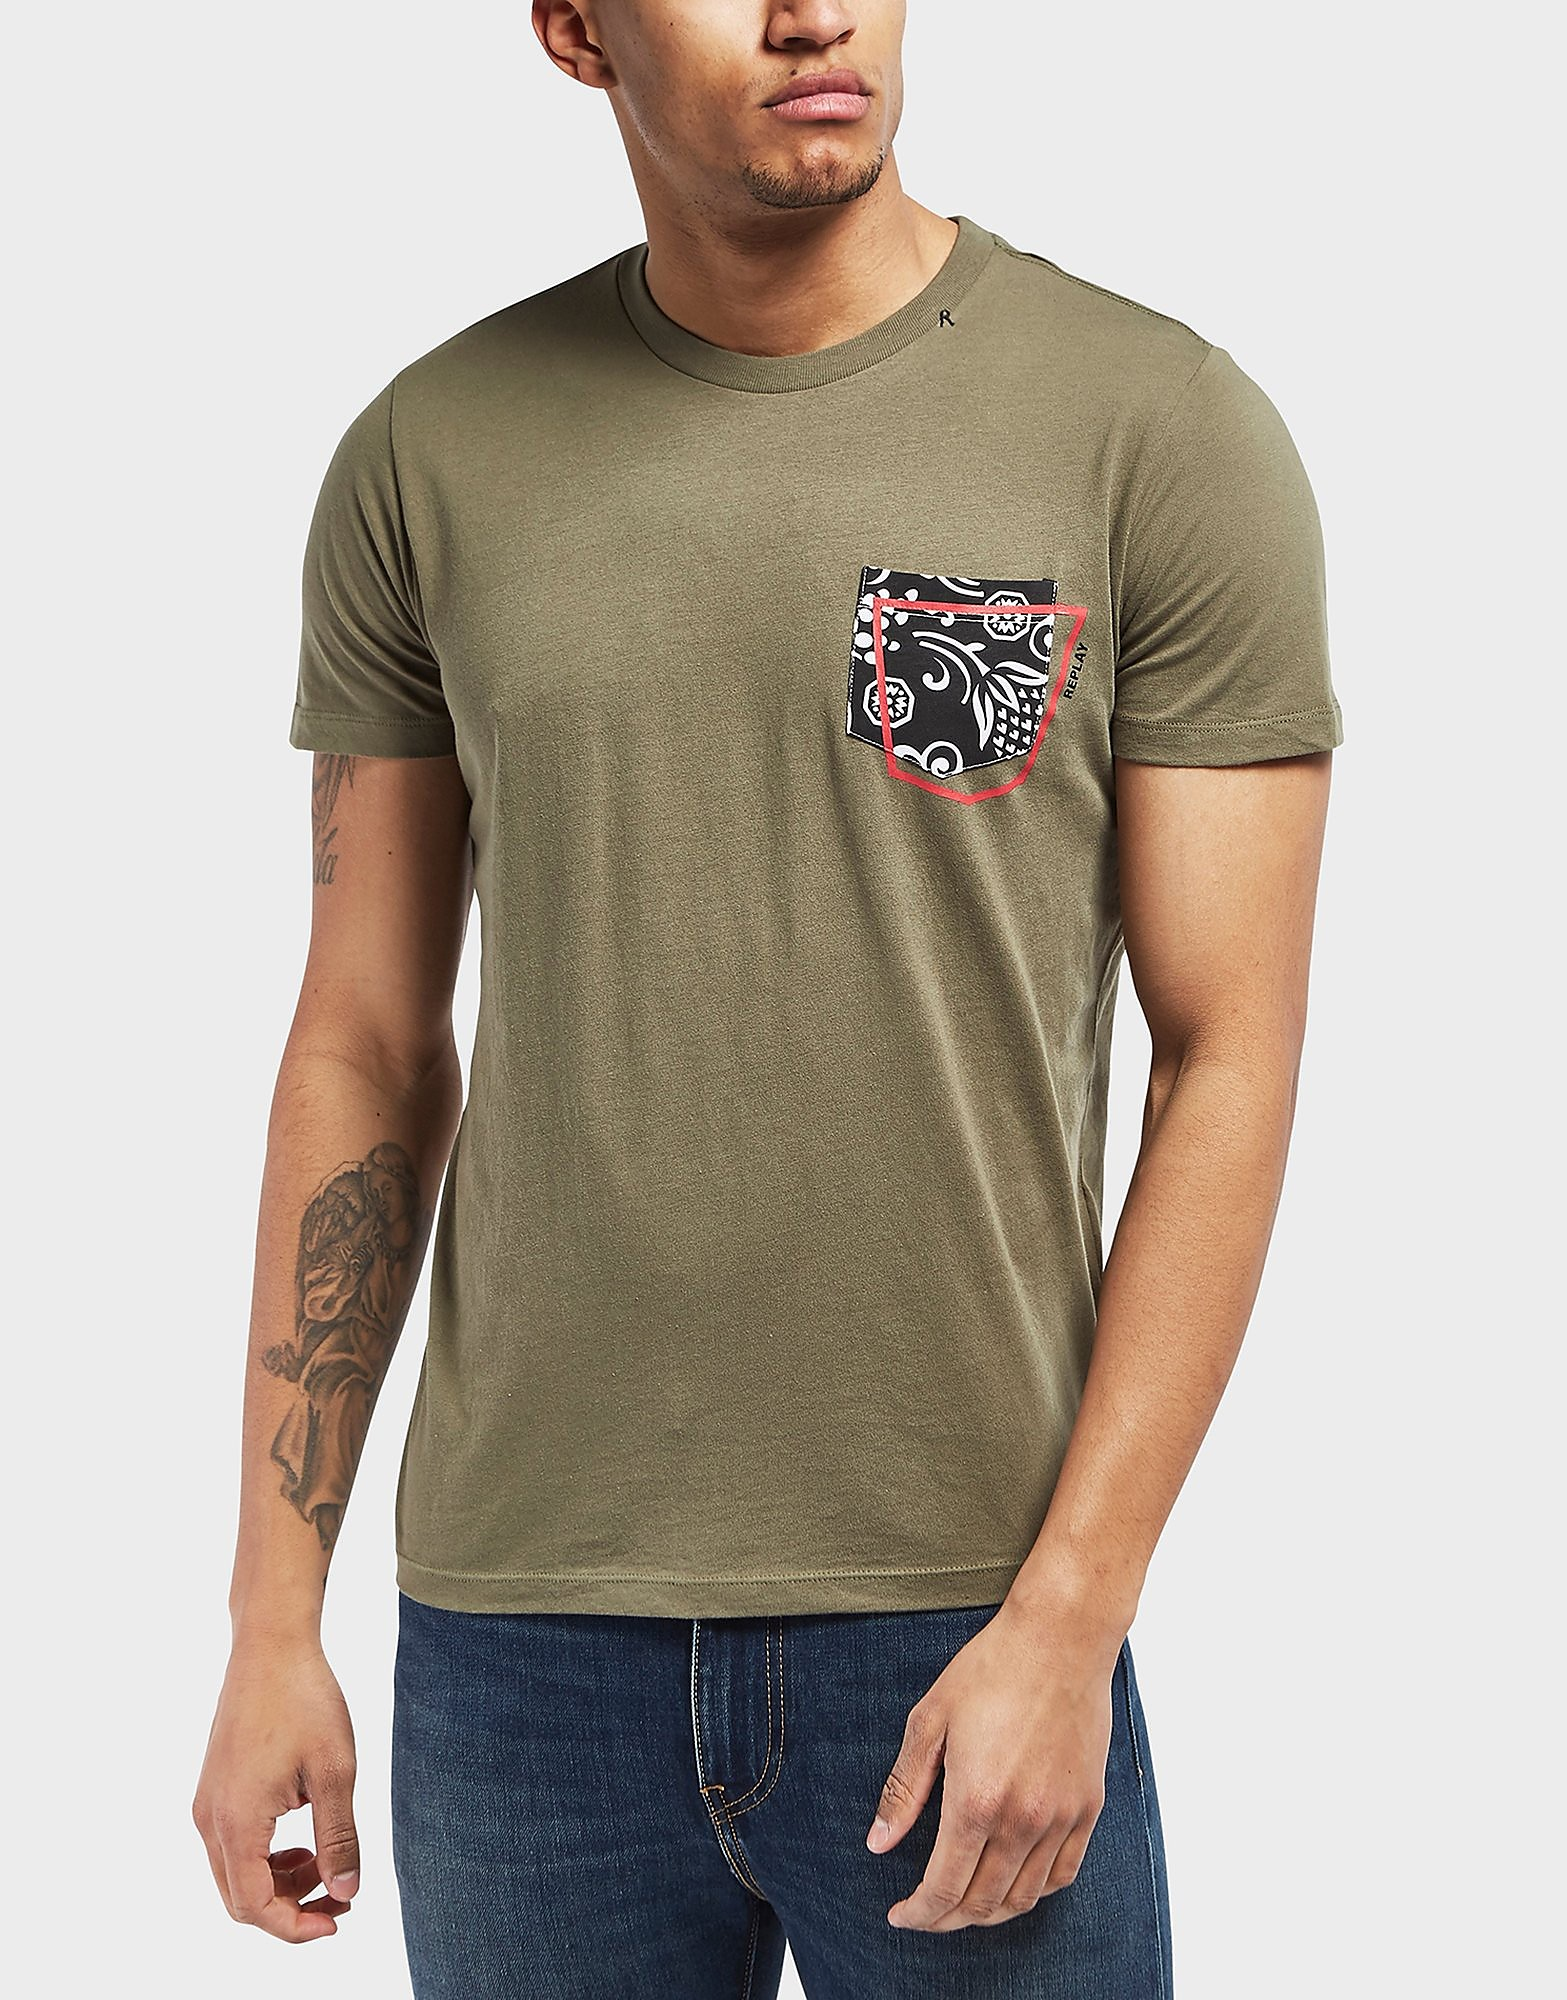 Replay Floral Pocket Short Sleeve T-Shirt